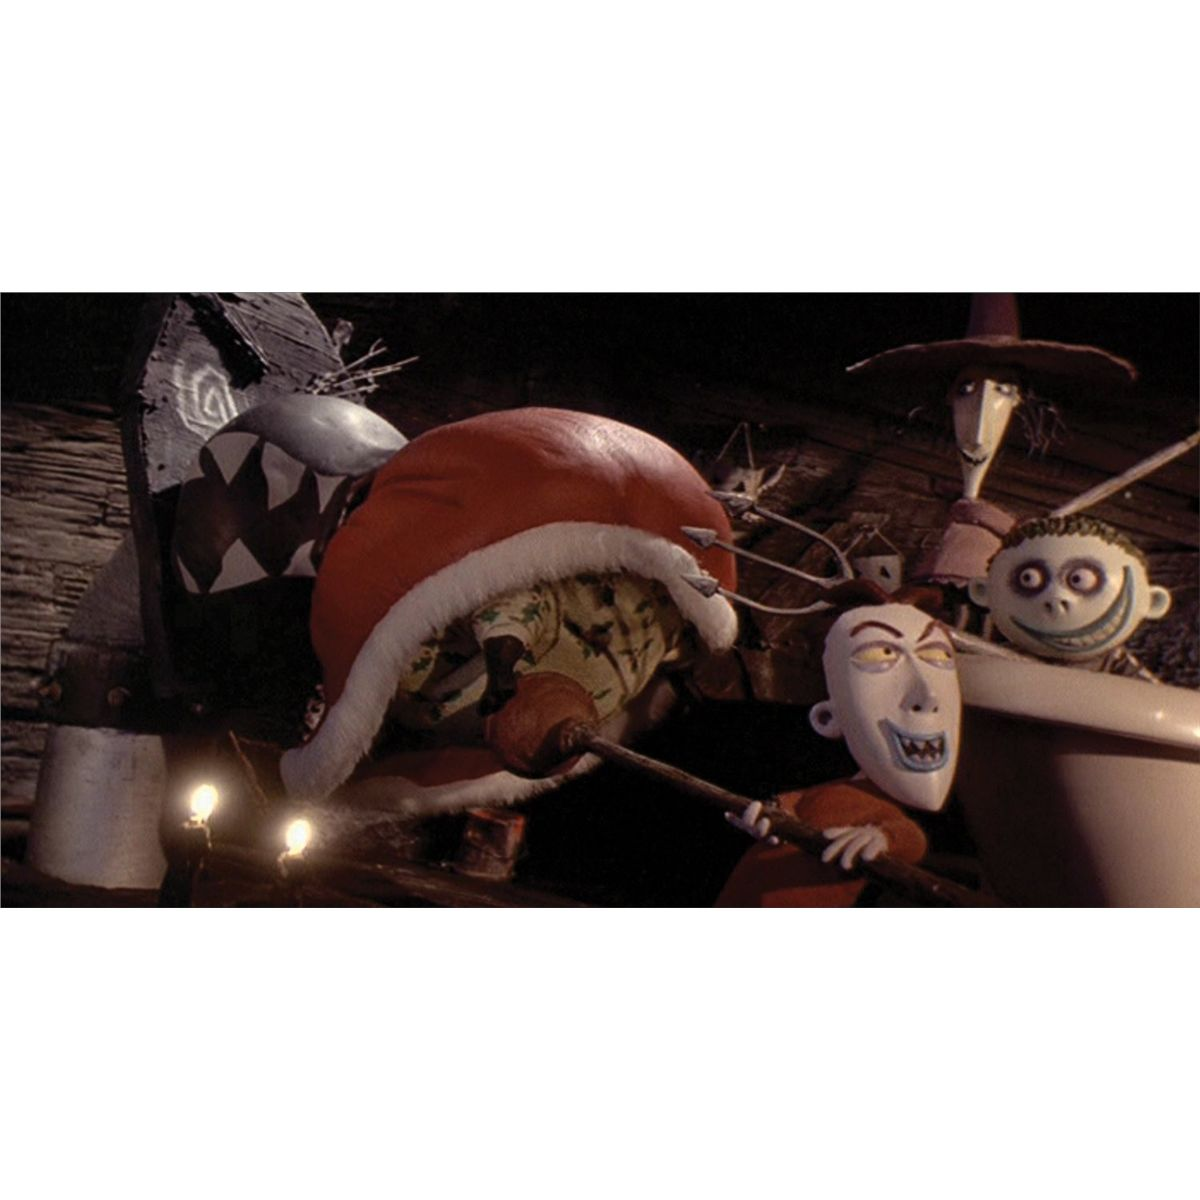 locks plunger from the nightmare before christmas - Lock Nightmare Before Christmas